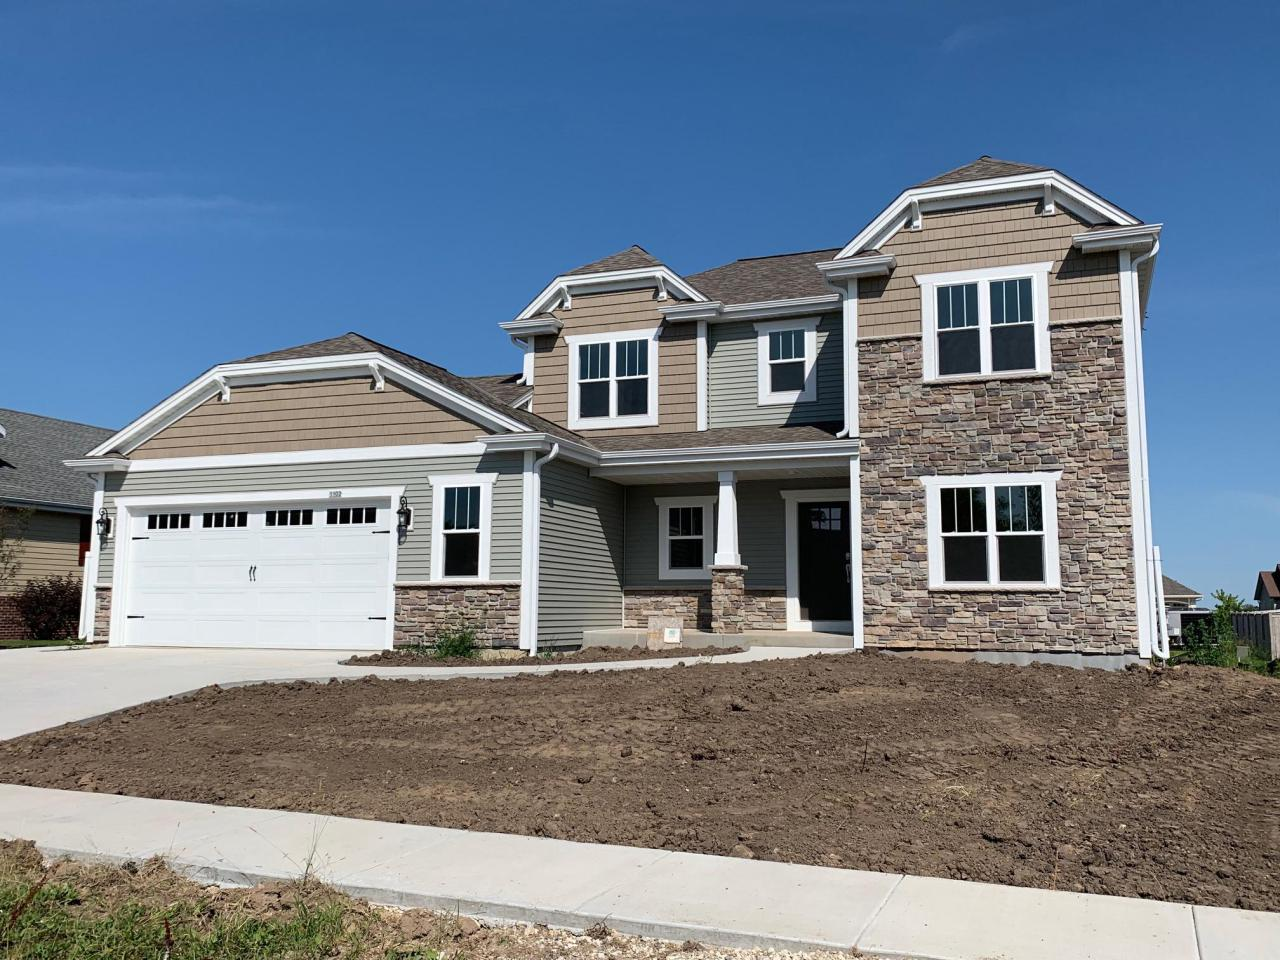 NEW CONSTRUCTION by Stepping Stone homes. $2500 buyer closing cost credit OR credit towards a patio/deck for an accepted offer by 10/31! The Camden offers lots of space in a traditional two story home....but this home is anything but traditional!  You'll find 3 BRs up & a den/office option on the main floor.  Spacious MBR w/private MBA & HUGE walk in closet.  Open concept w/gas fireplace & patio door off dining area.  2x6 exterior framing and amazing upgrades like soft close dovetail cabinetry, quartz and marble counter tops, double sinks in the bathrooms, upgraded flooring, 8 ft GA doors & more! This home comes equipped with Smart Home Technology, including integrated lighting, door locks, ecobee smart thermostat, video doorbell, Lift Master garage door, all of which you can control from